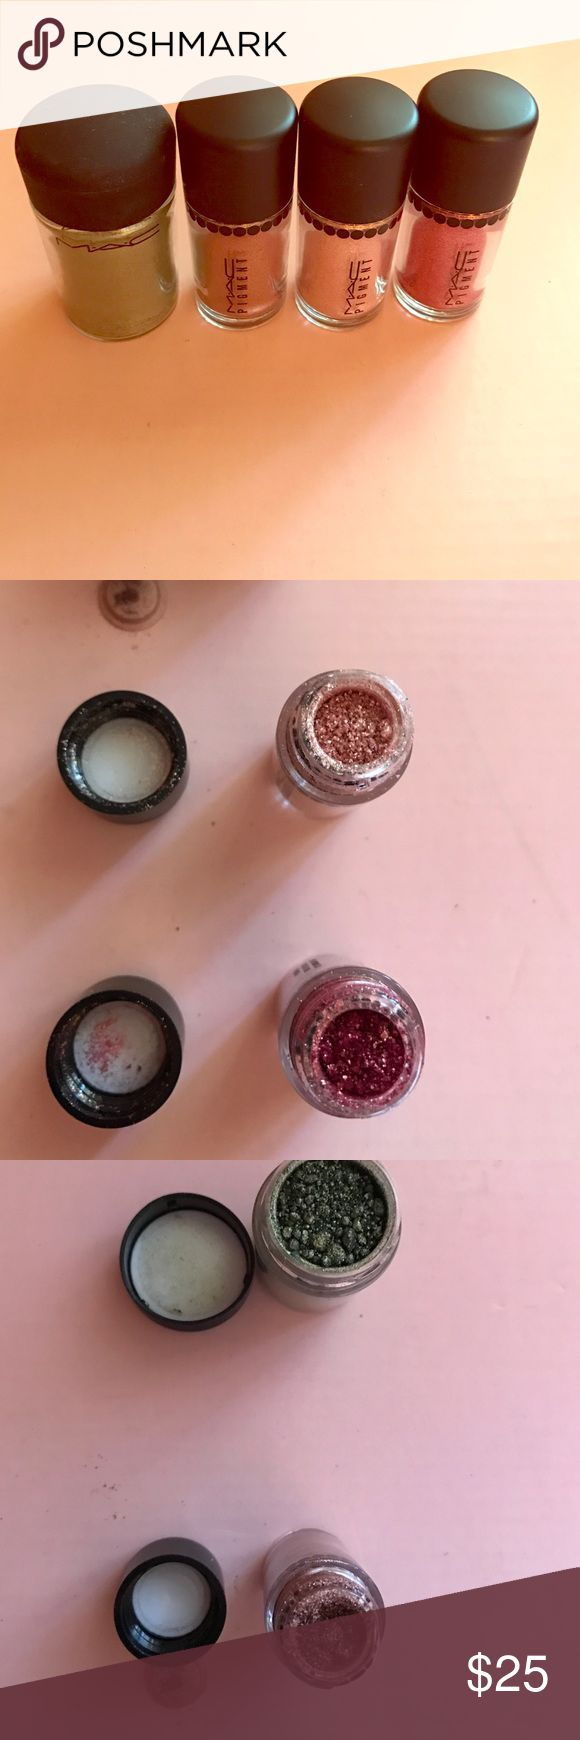 Three MAC Cosmetic pigments Three MAC Cosmetics pigments. They are in golden olive, tan, rose and whisper pink. MAC Cosmetics Makeup Eyeshadow